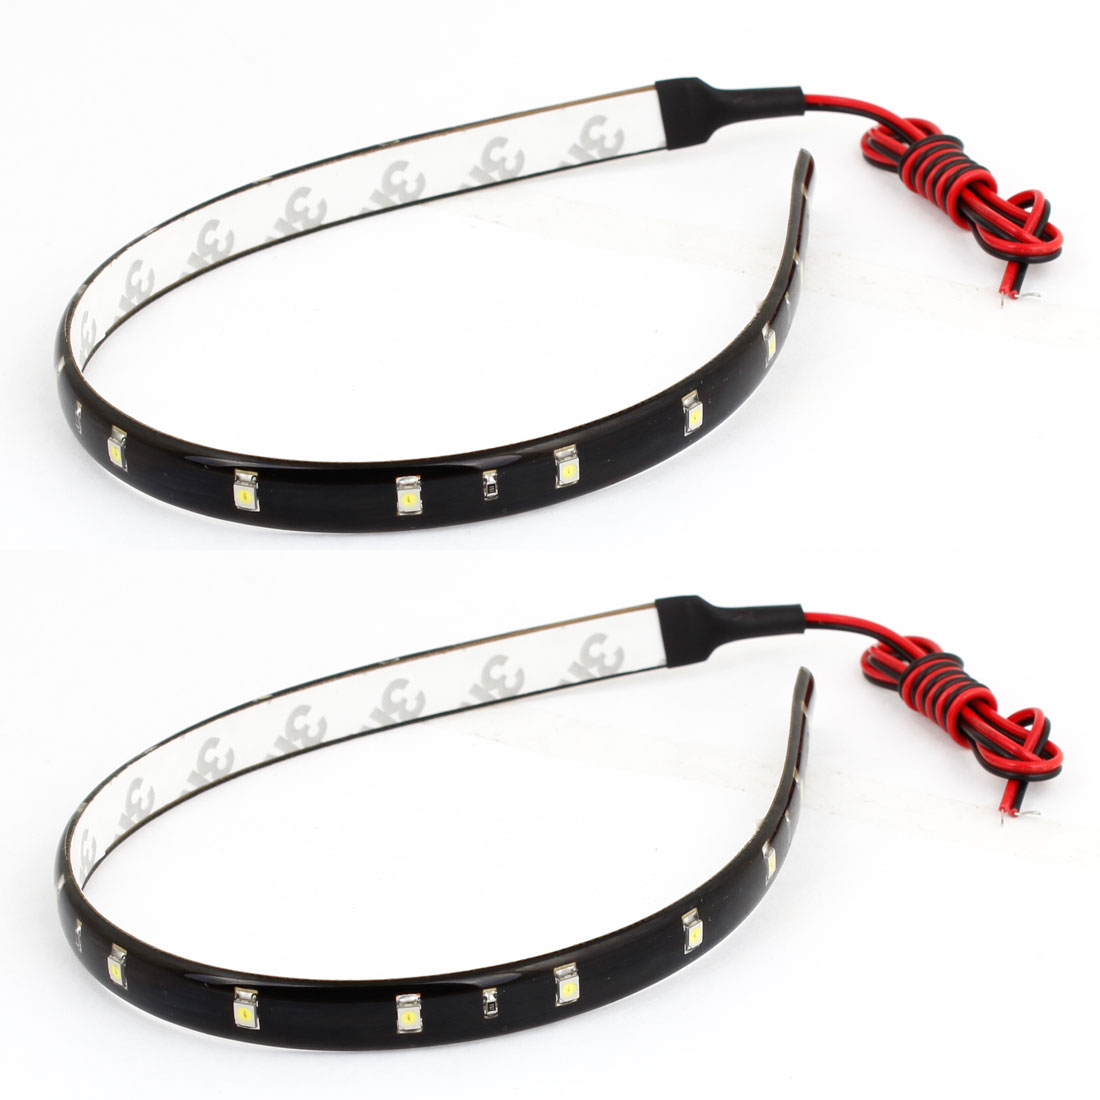 2 Pcs Car 15 LED 3528 1210 SMD Decorative Flexible Light Strip White 30cm Long